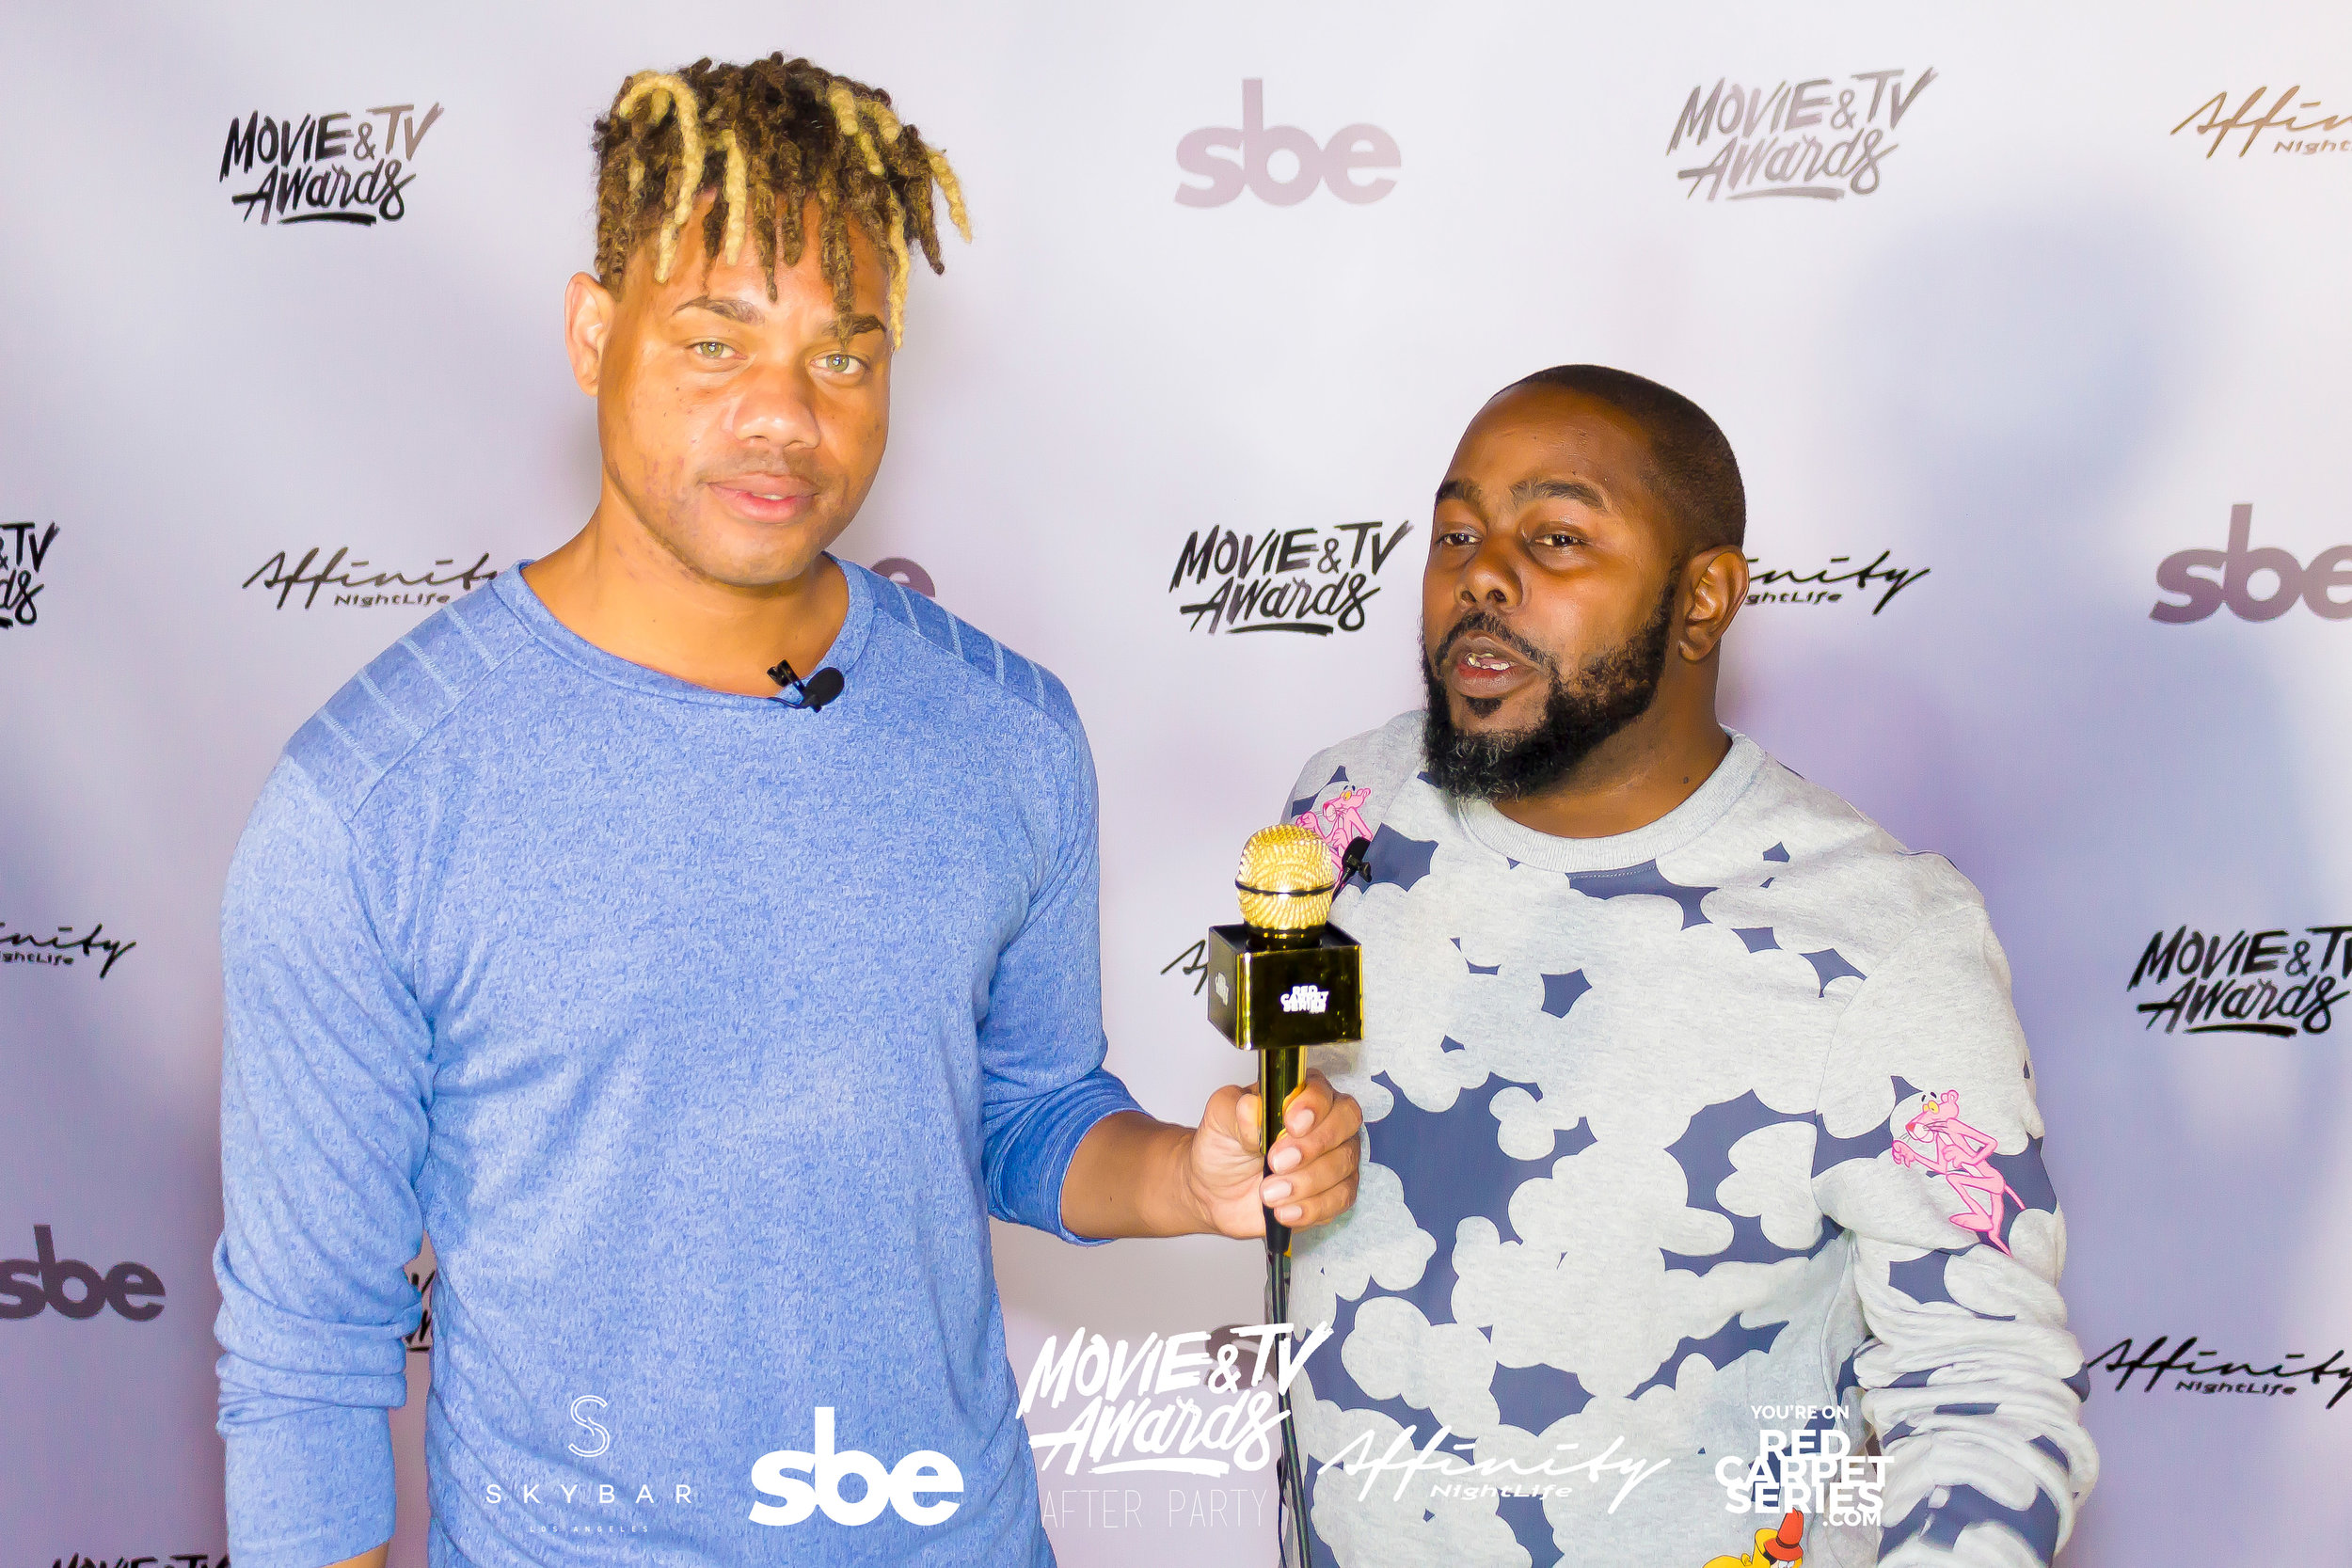 Affinity Nightlife MTV Movie & TV Awards After Party - Skybar at Mondrian - 06-15-19 - Vol. 1_110.jpg